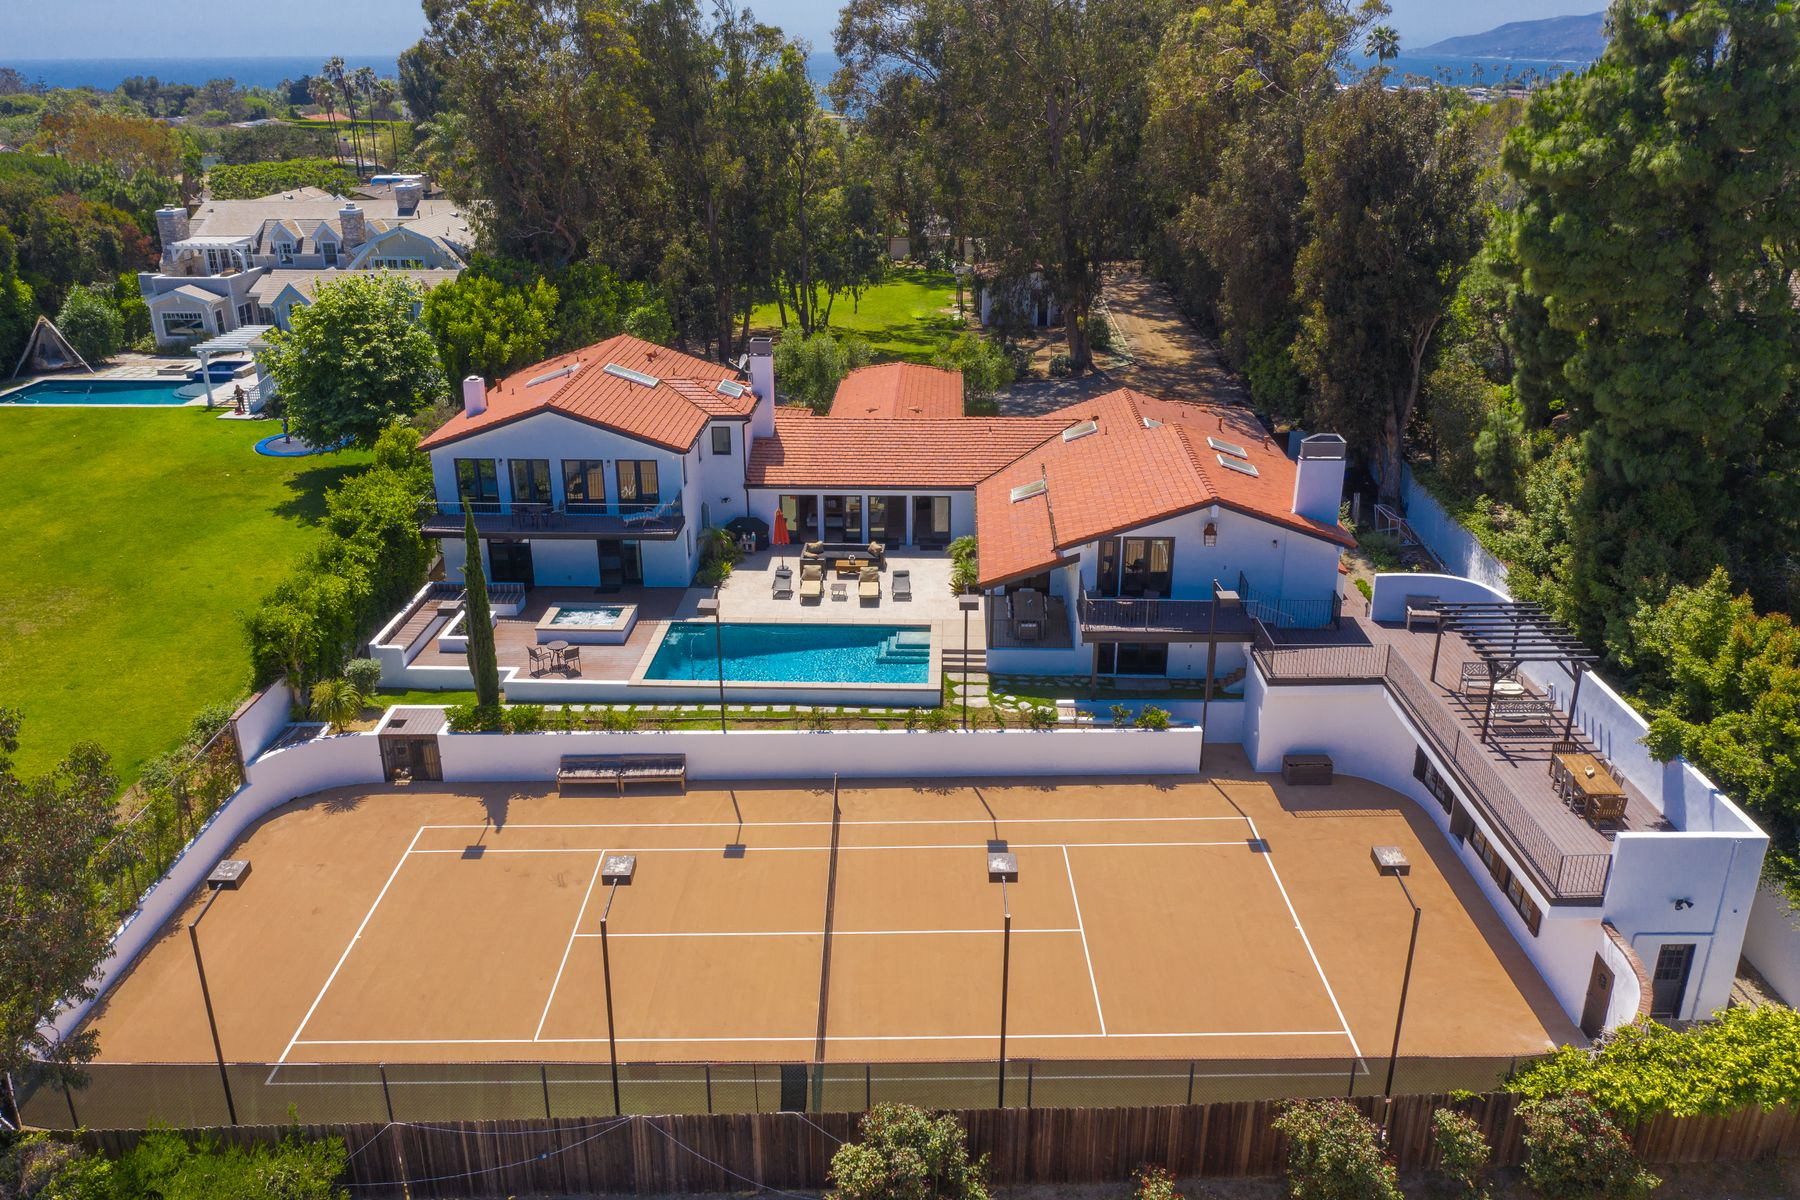 Single Family Homes for Sale at Ocean View Point Dume Tennis Estate 6930 Dume Drive Malibu, California 90265 United States